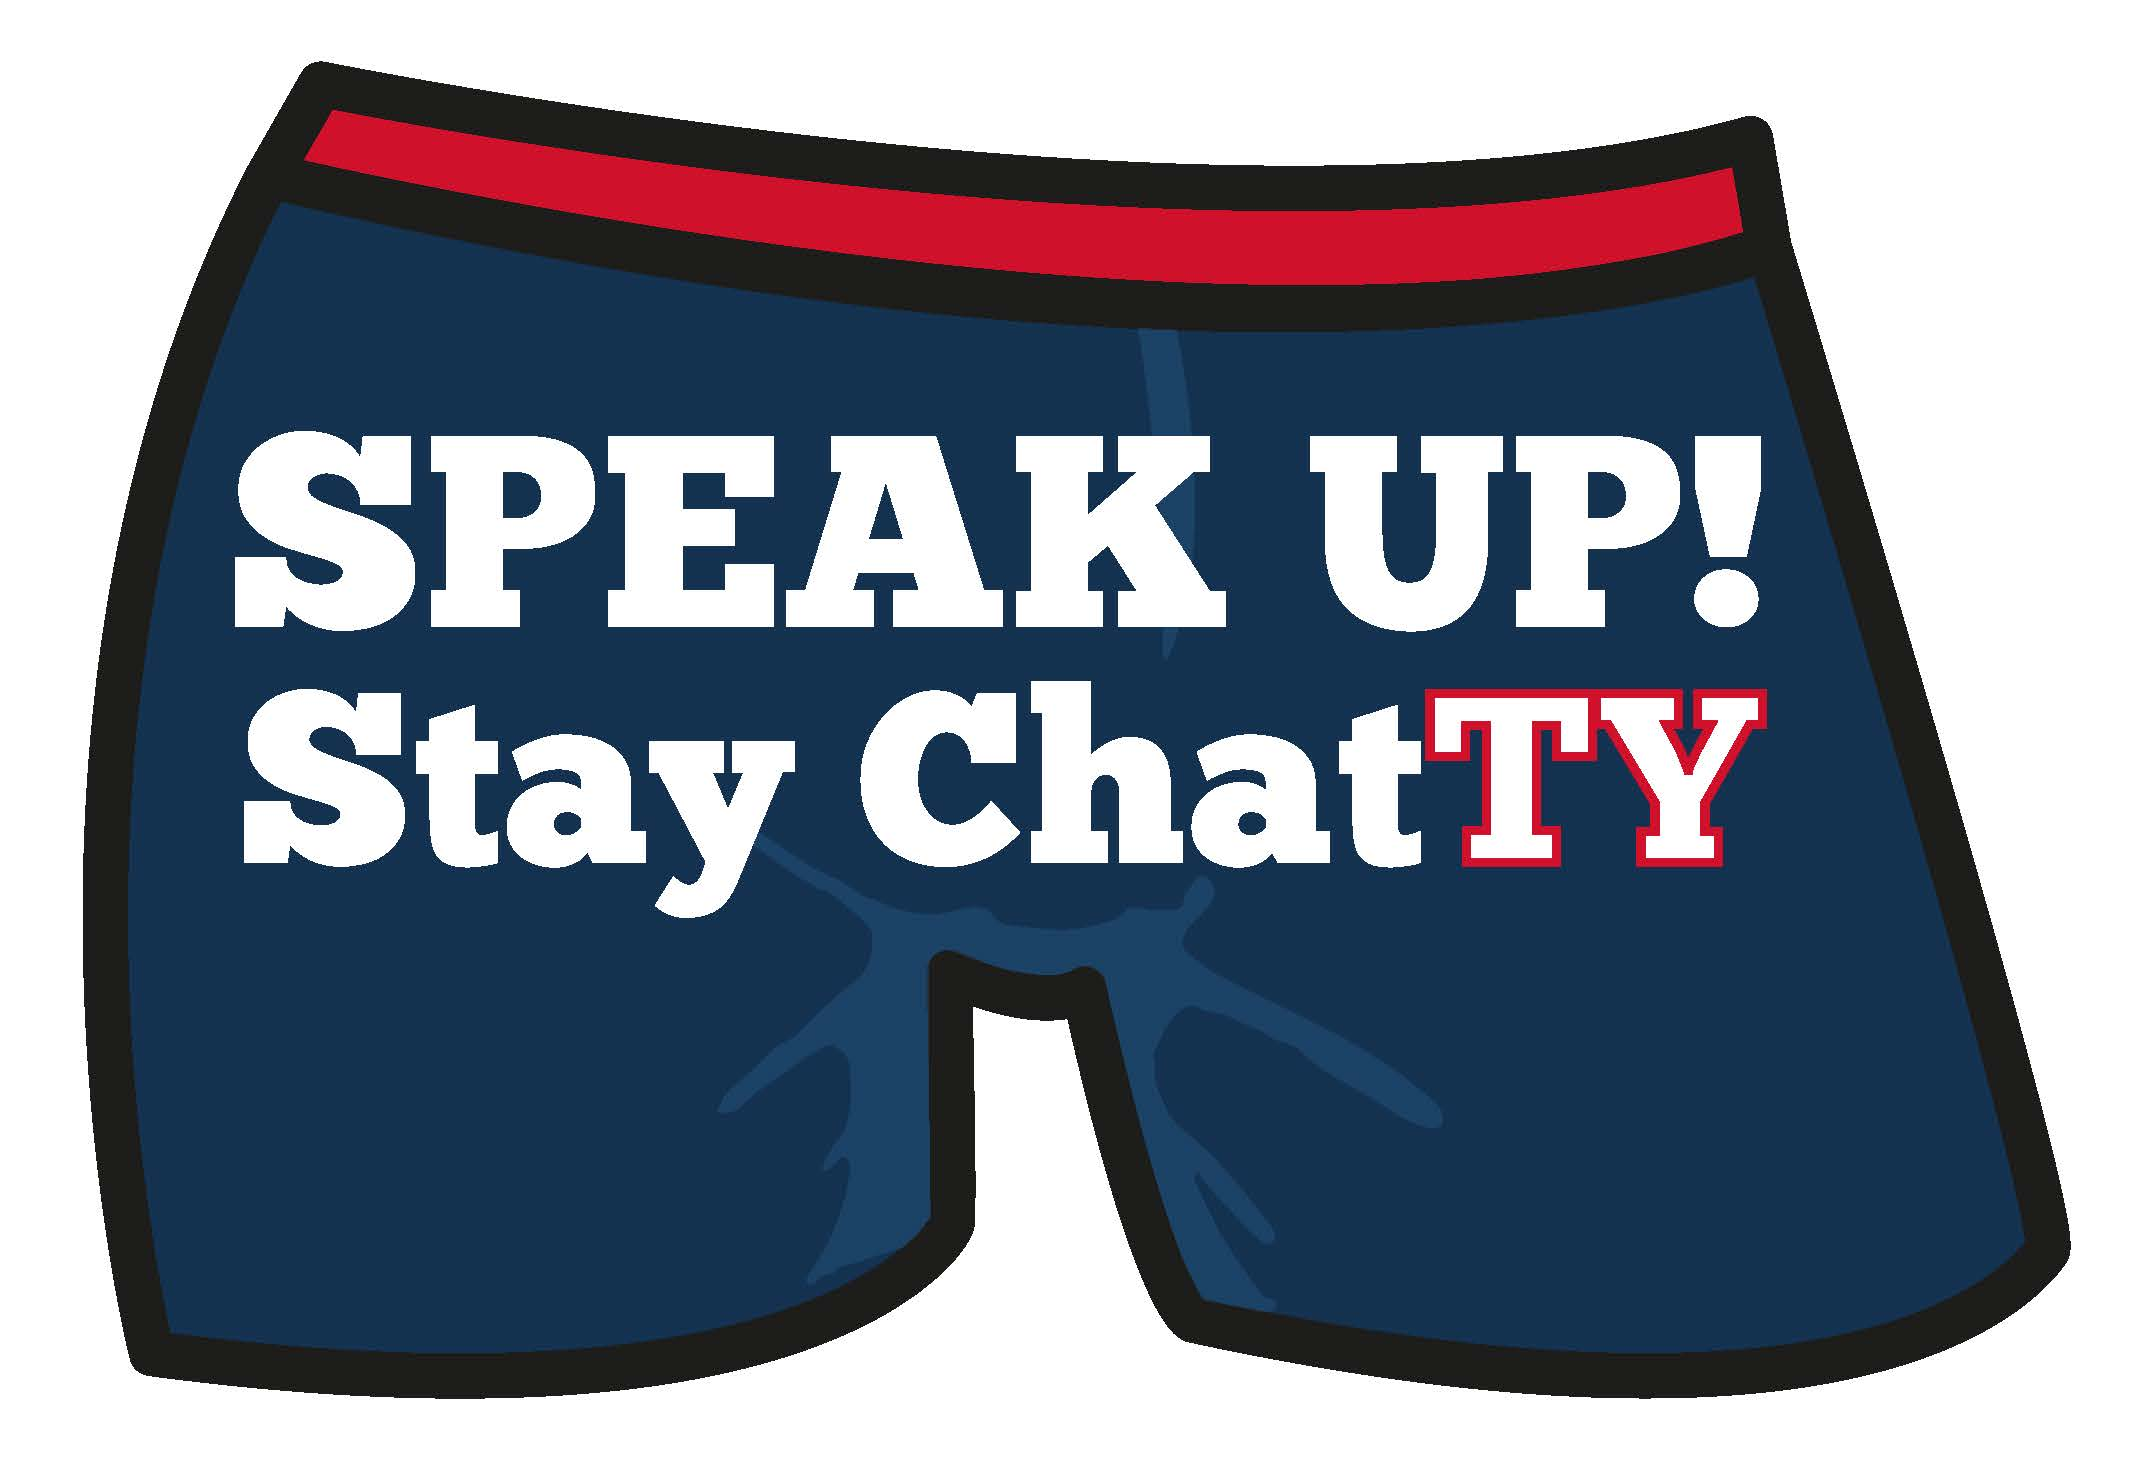 Speak up stay chatty logo blue shorts